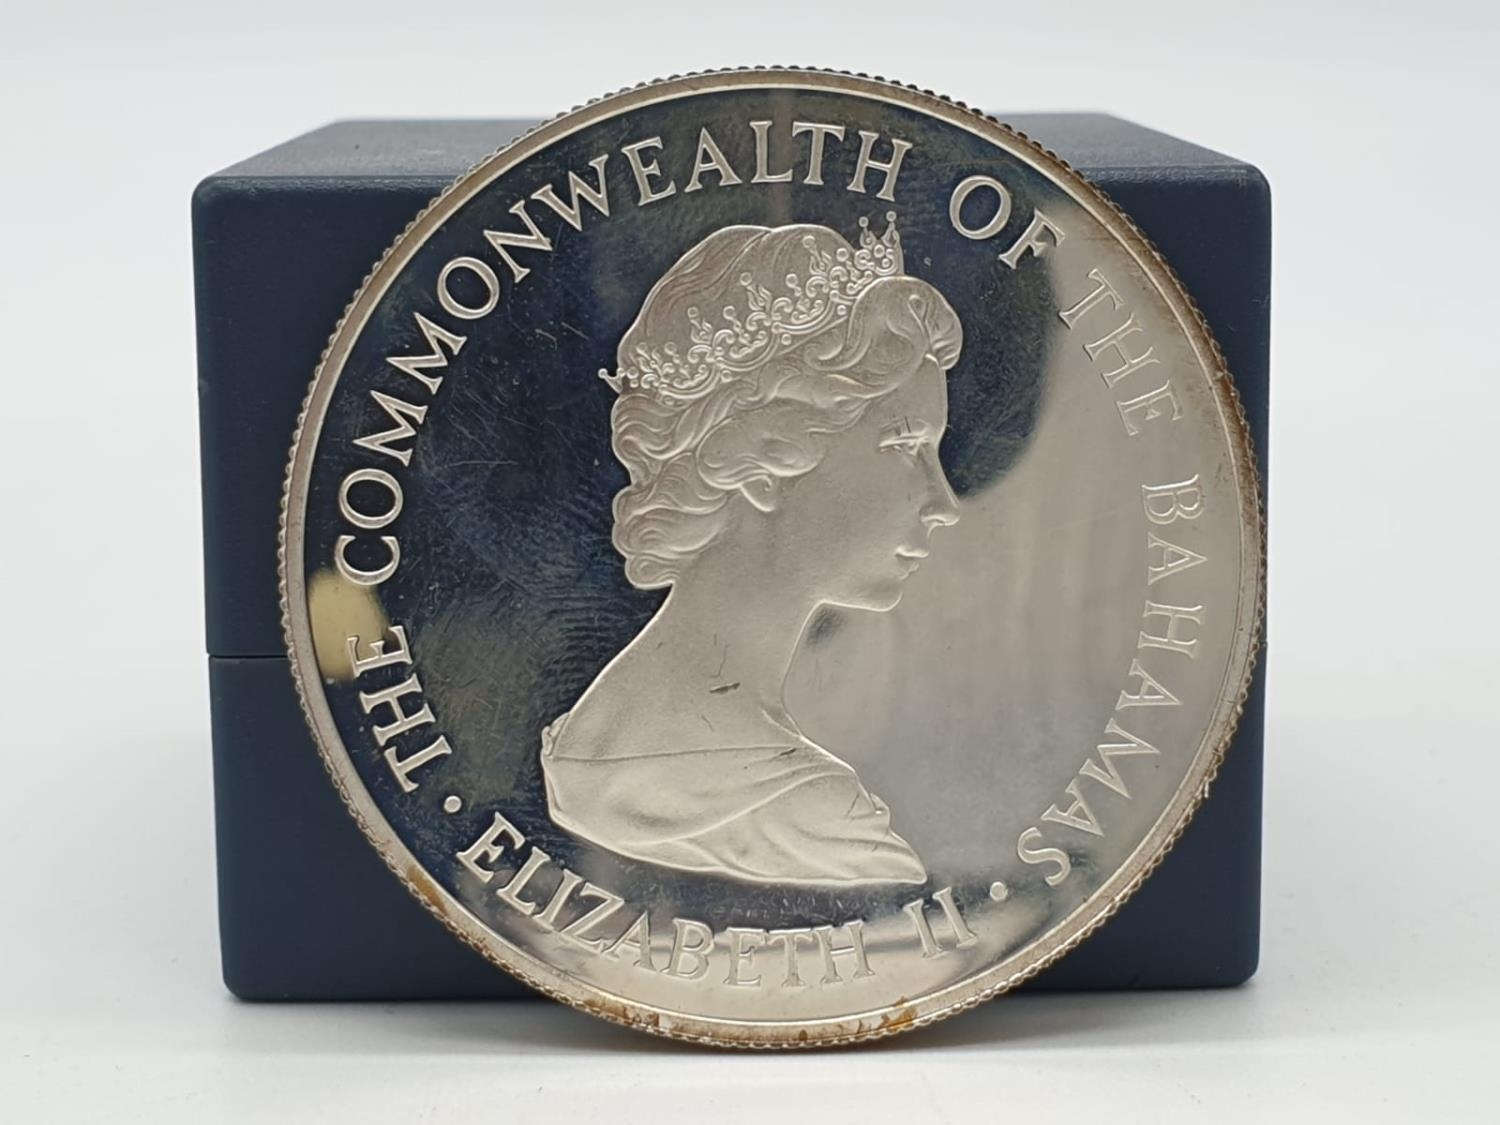 Silver Commemorative Coin of the Royal Wedding 1981 10 Dollars The commonwealth of the Bahamas 28.5g - Image 3 of 3